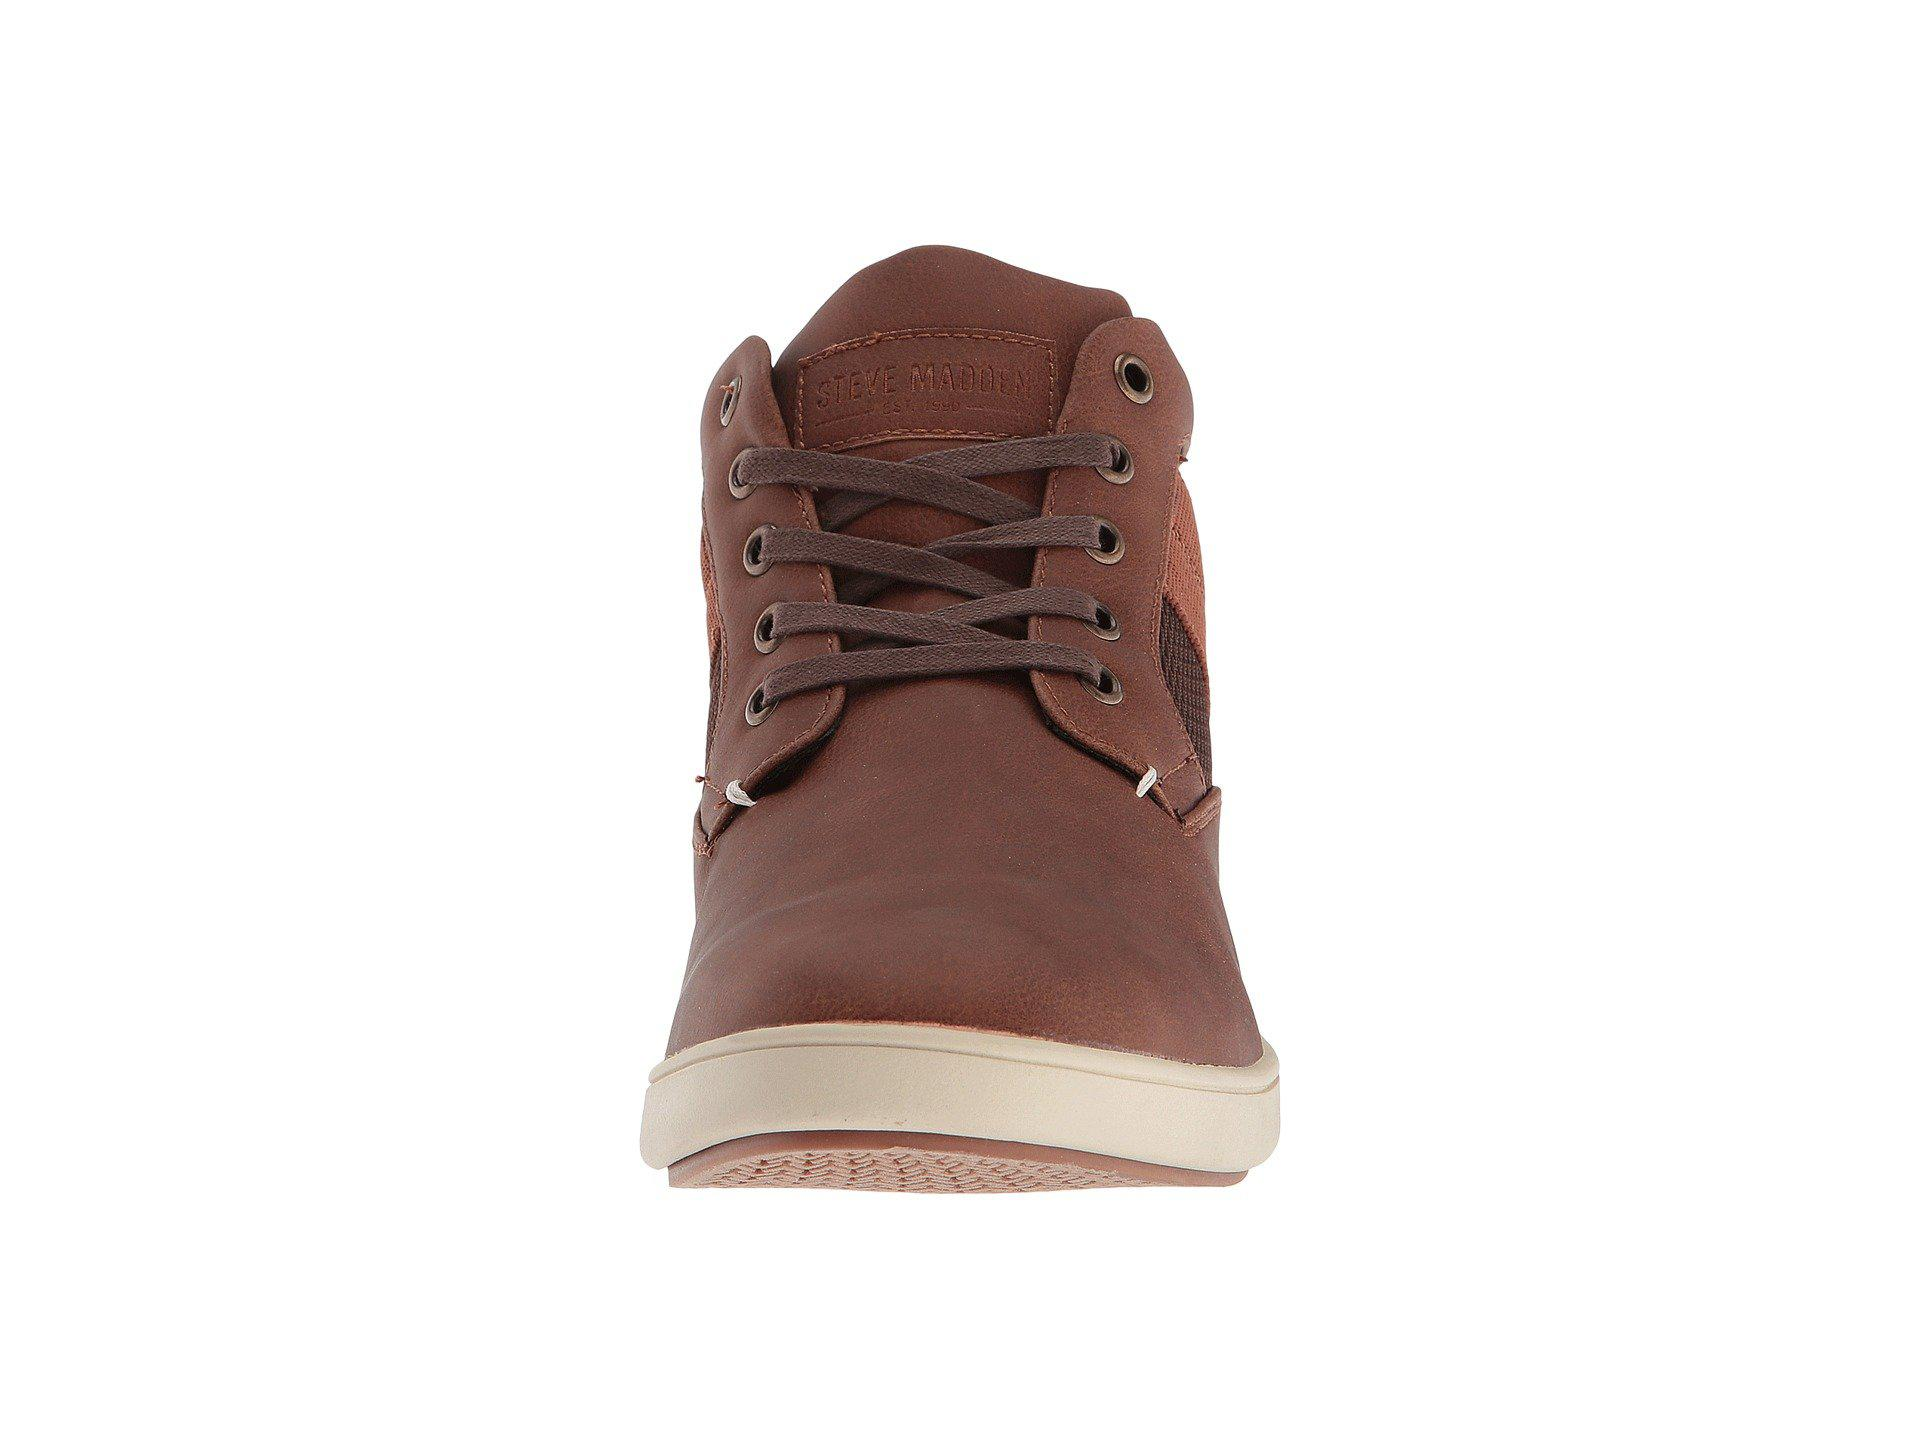 f5b08ed1fb4 Lyst - Steve Madden Frazier Sneaker in Brown for Men